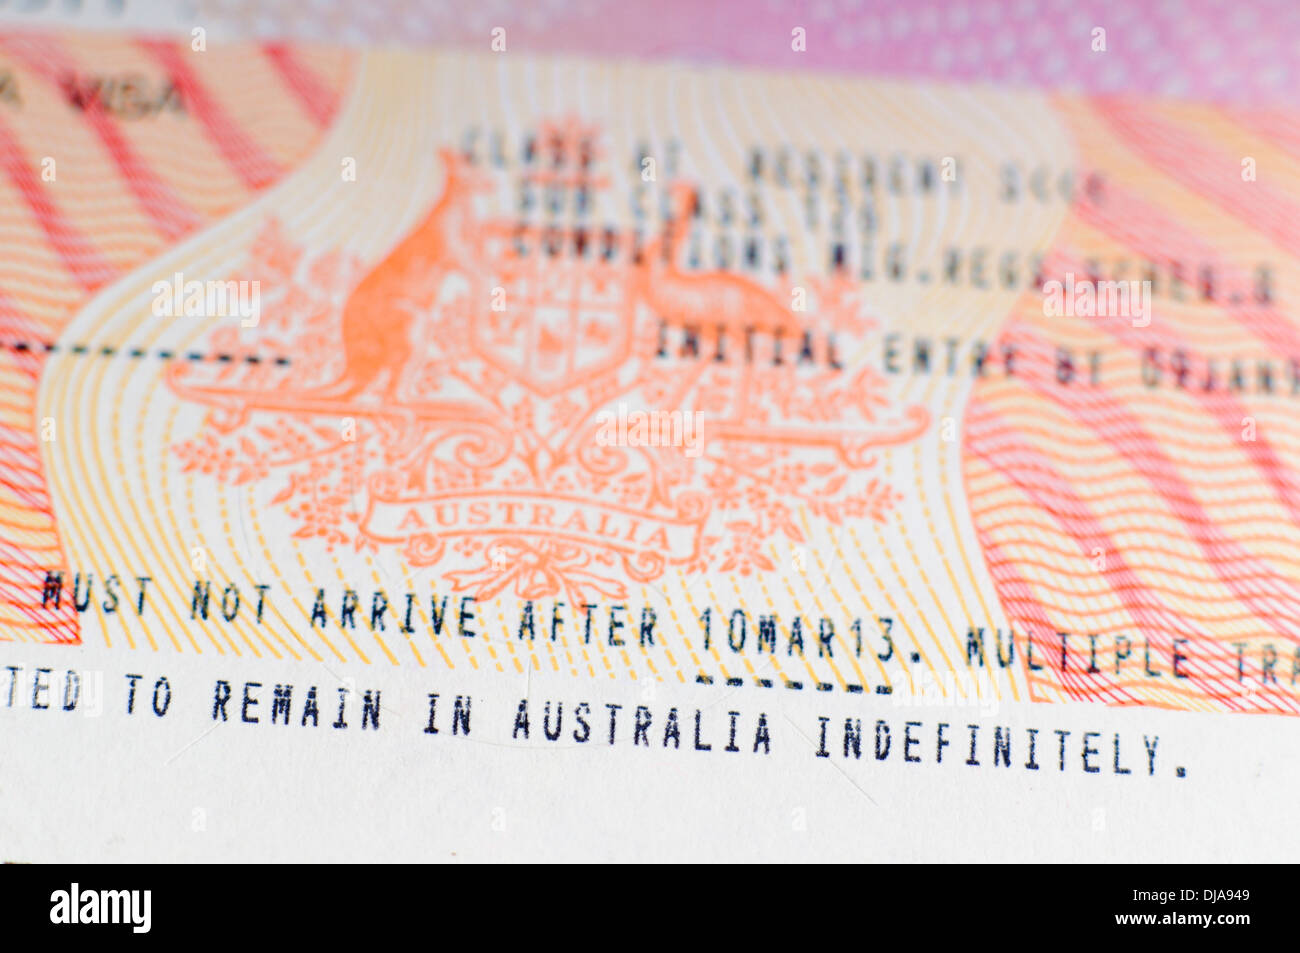 travel document australian permanent resident